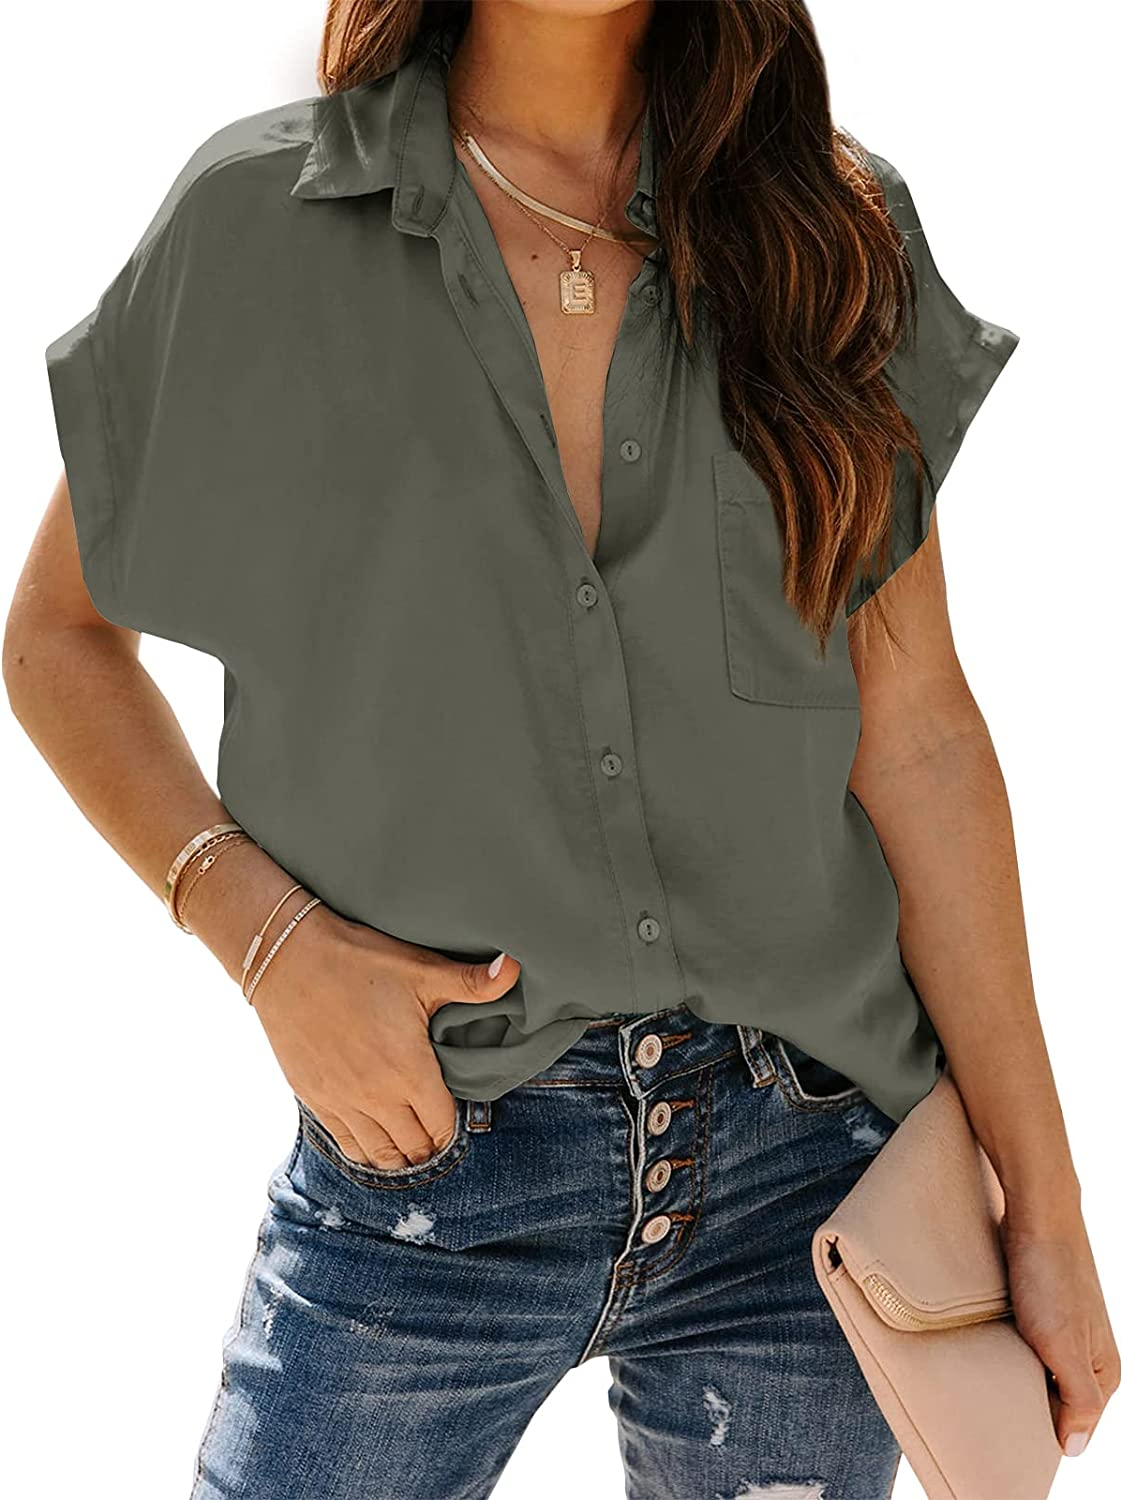 Inorin Womens Casual Button Down Short Sleeve Shirts V Neck Collared Shirt Tops Blouses with Pockets